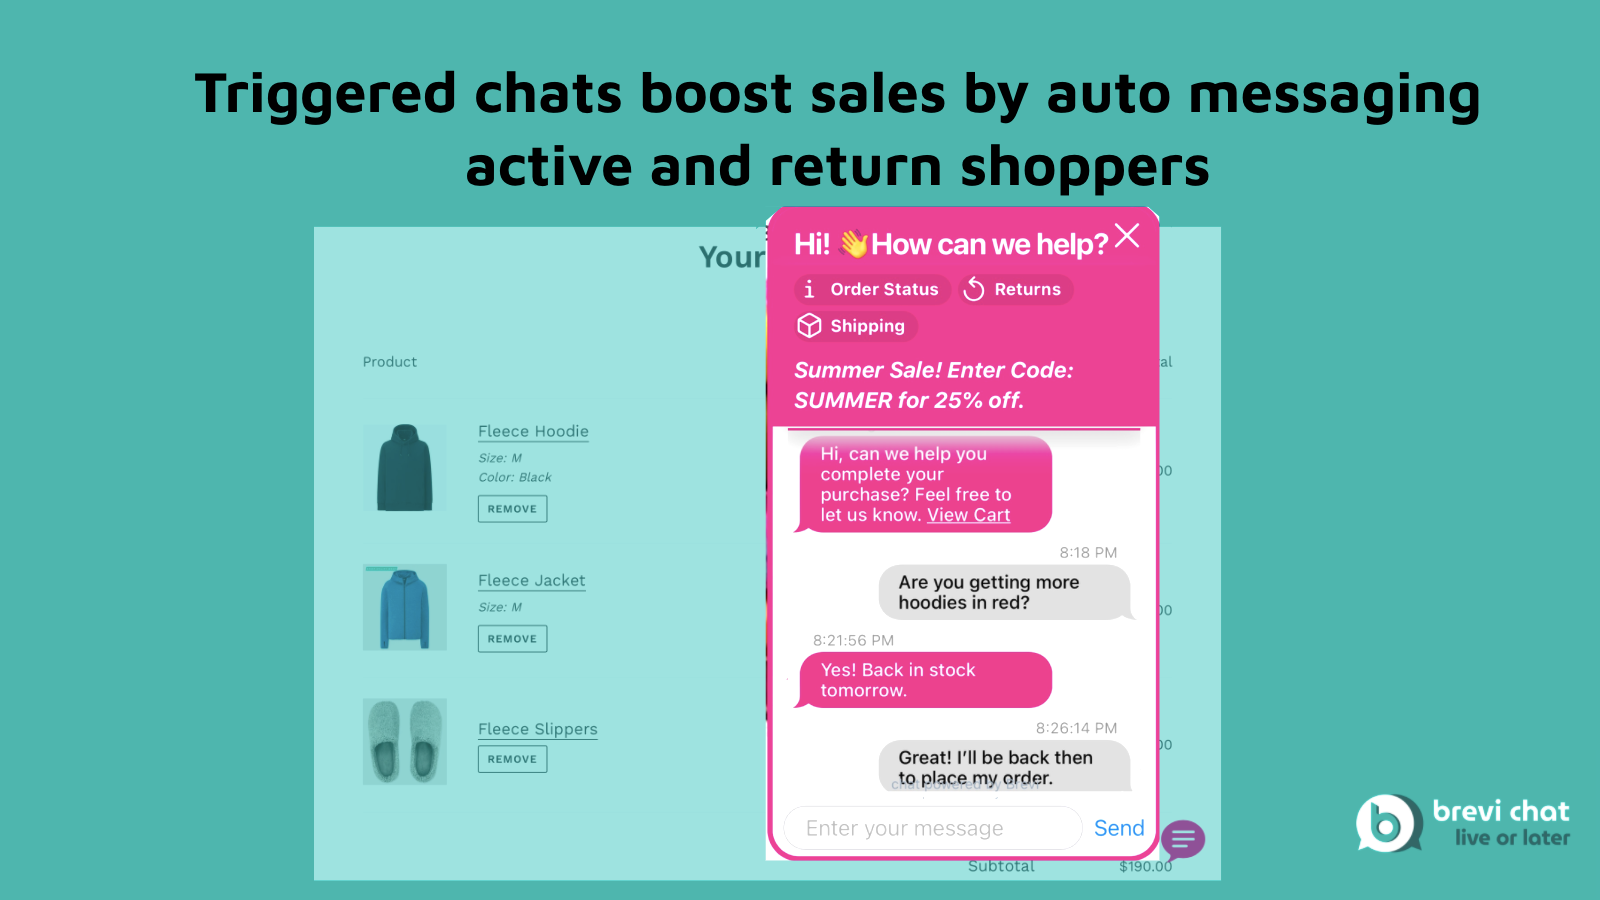 Triggered chats boost sales by auto messaging active shoppers.